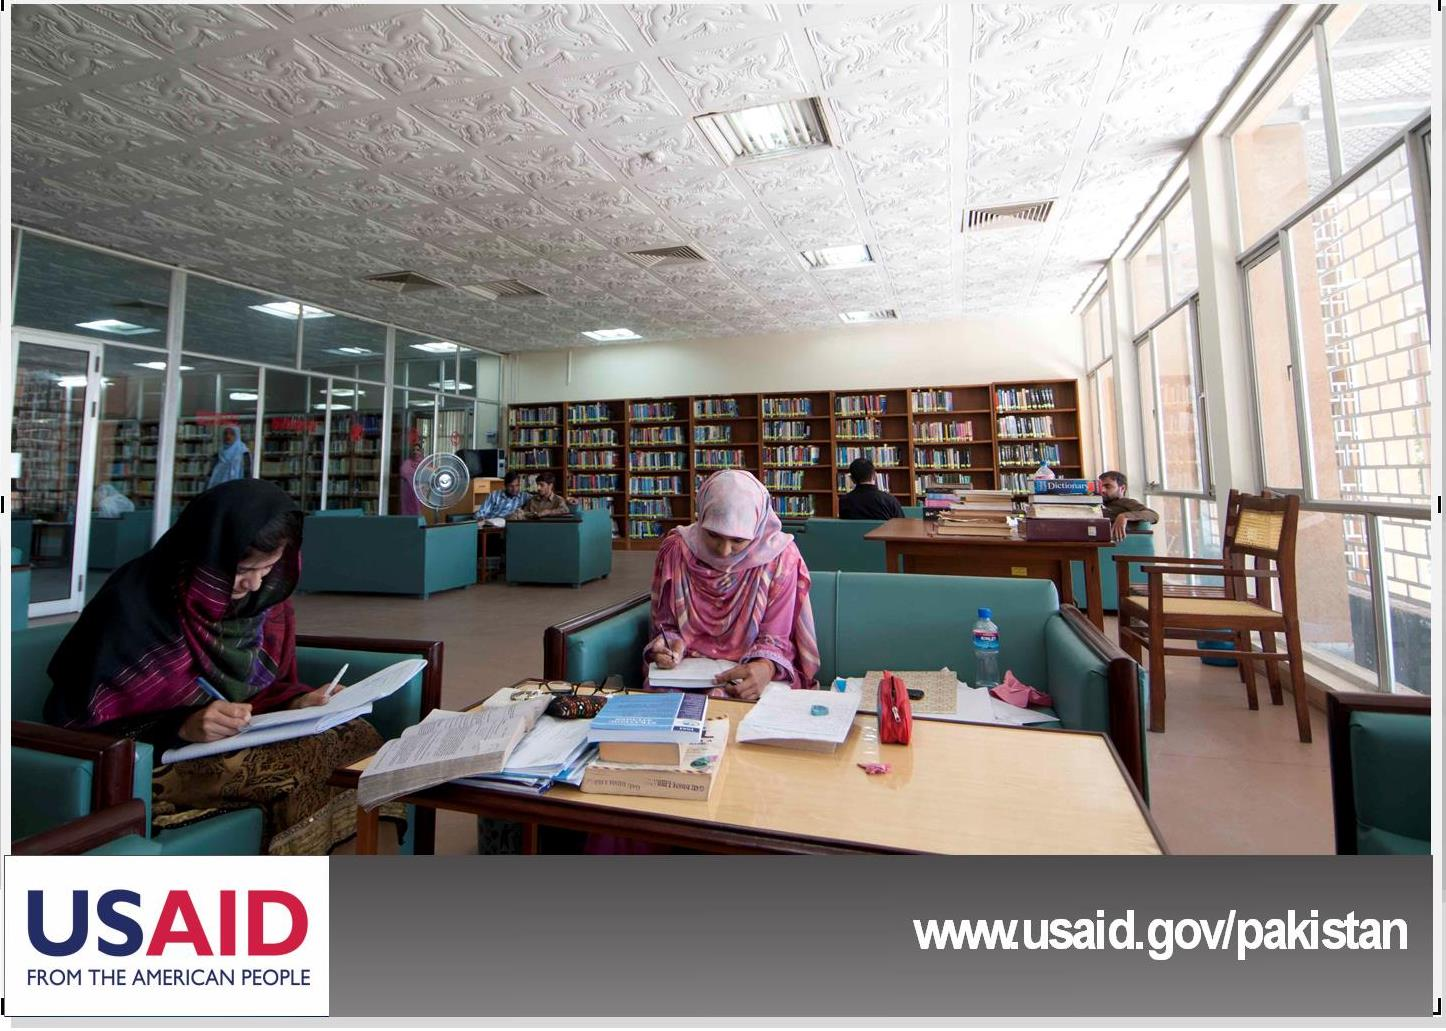 More educational resources 4 girls = empowered girls. #USAID making sure half of #scholarships go to #girls http://t.co/UiJSop1aQo